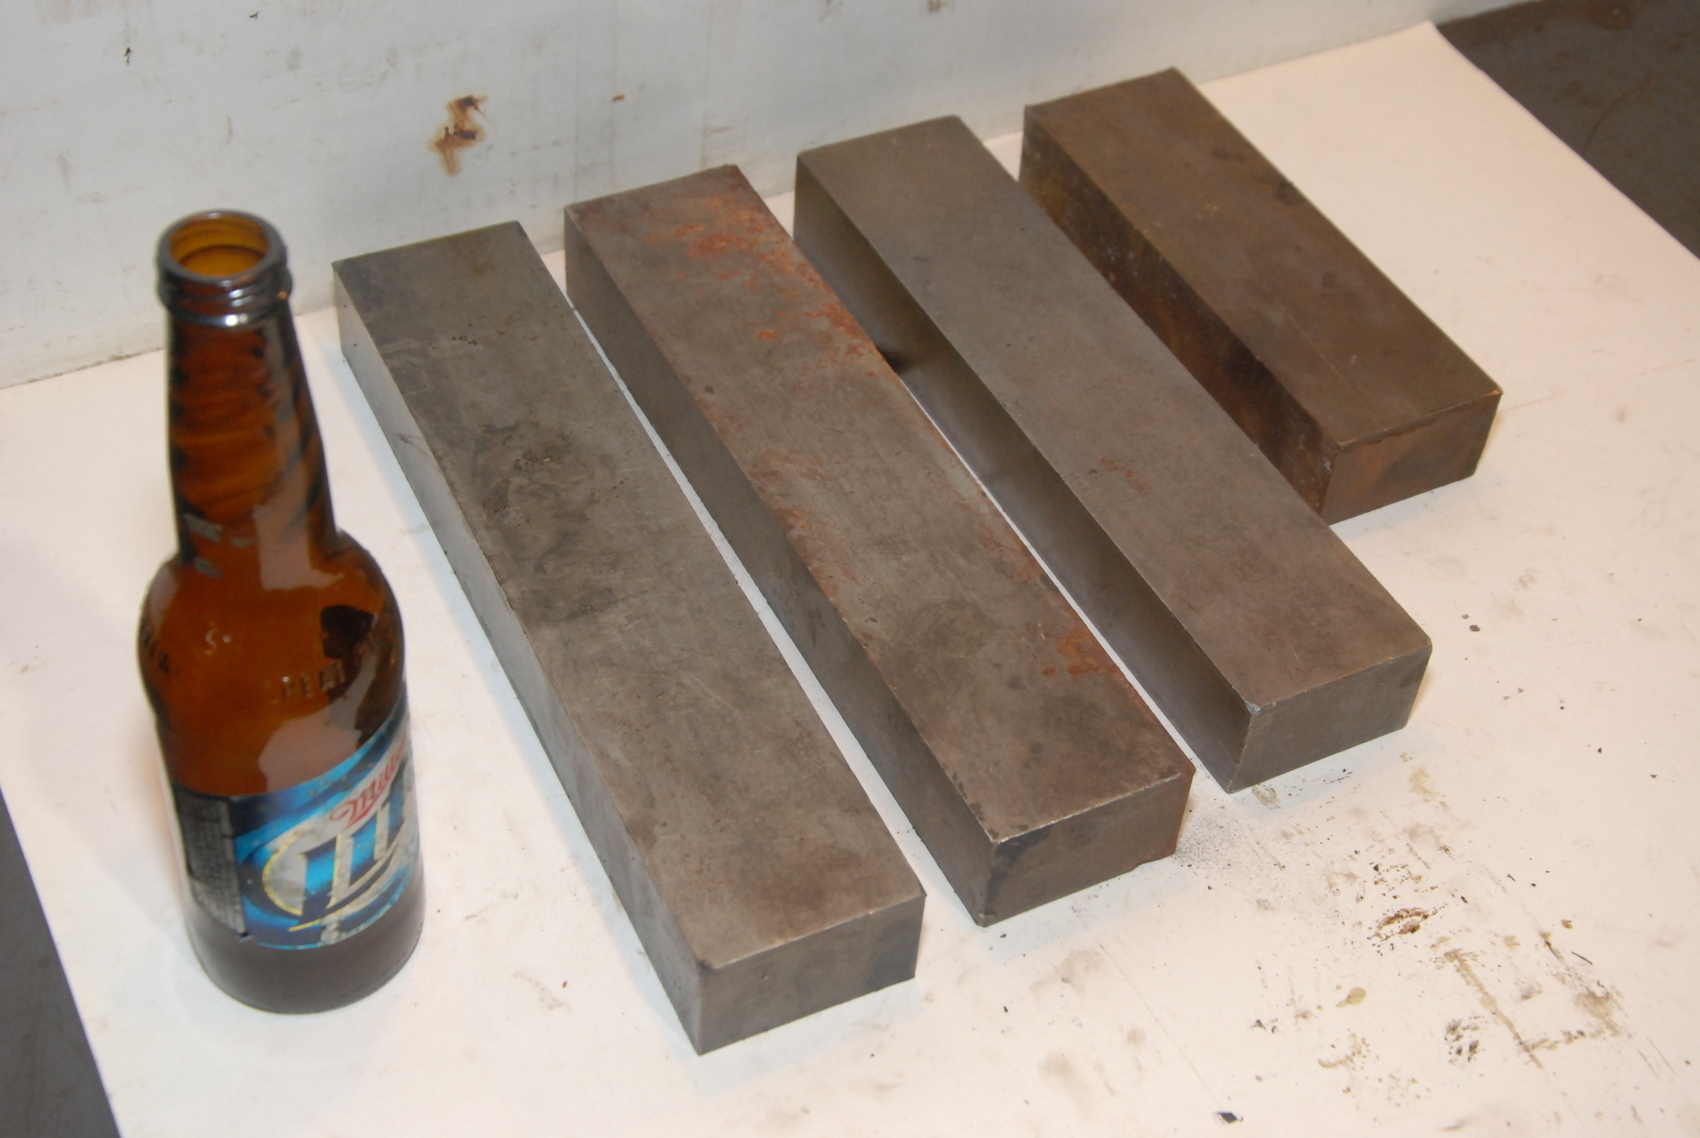 Lot of 4 steel Rectangular Bar for blacksmith anvil,45.4lbs